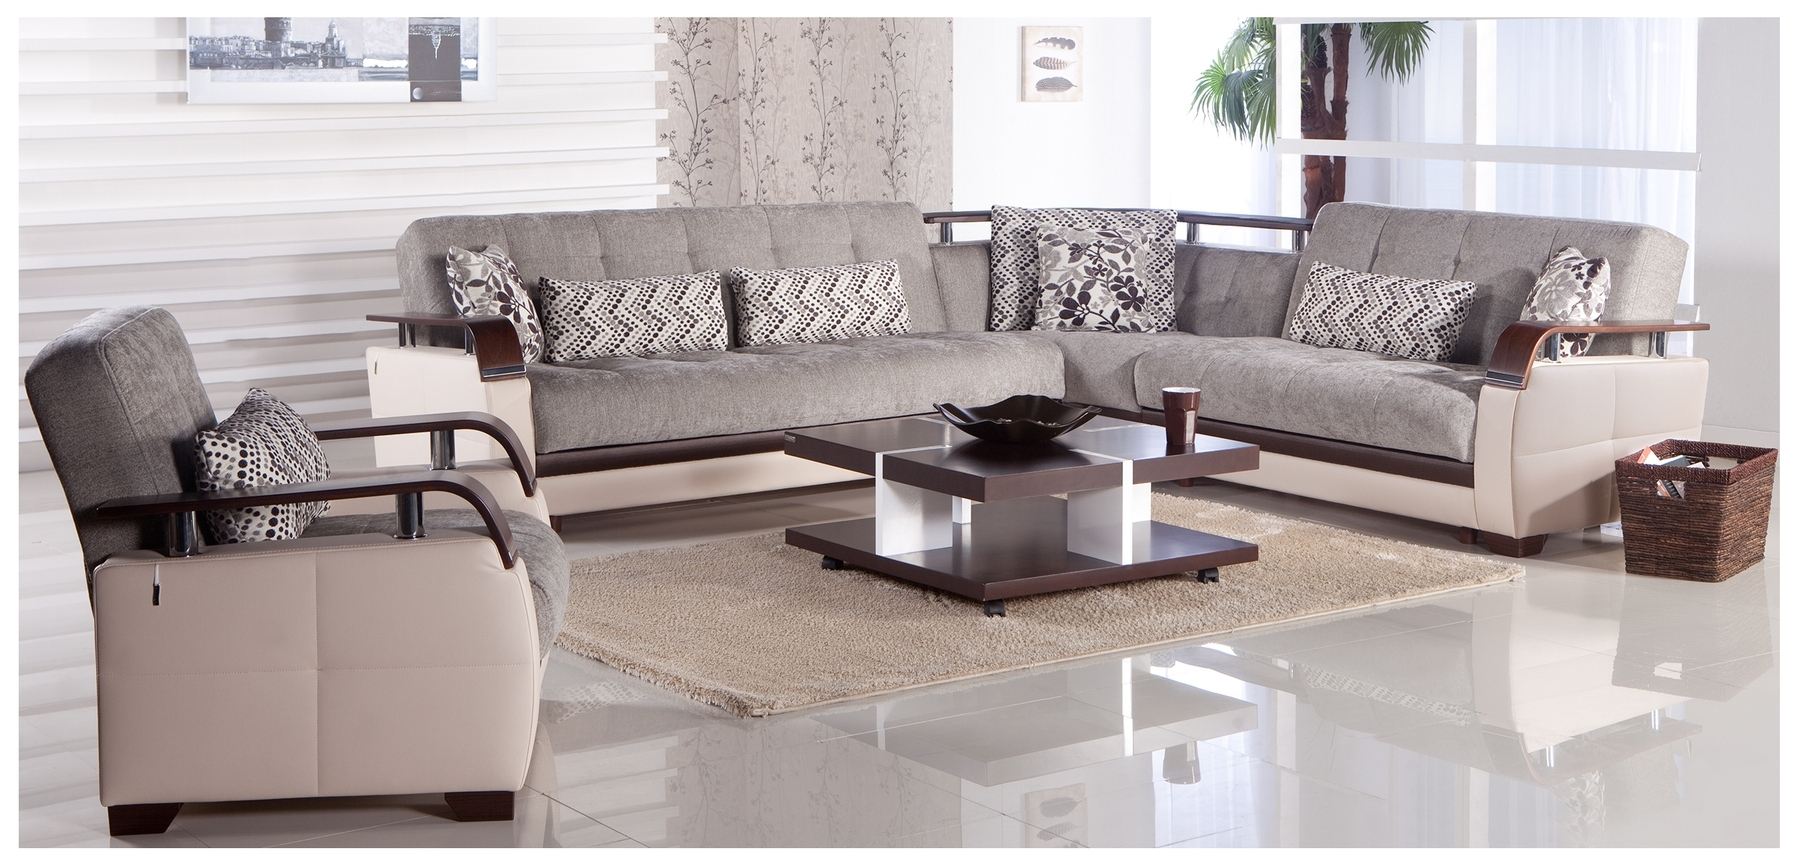 Modern Microfiber Sectional Sofas Regarding Widely Used Contemporary Microfiber Sectional Sofa (View 8 of 15)